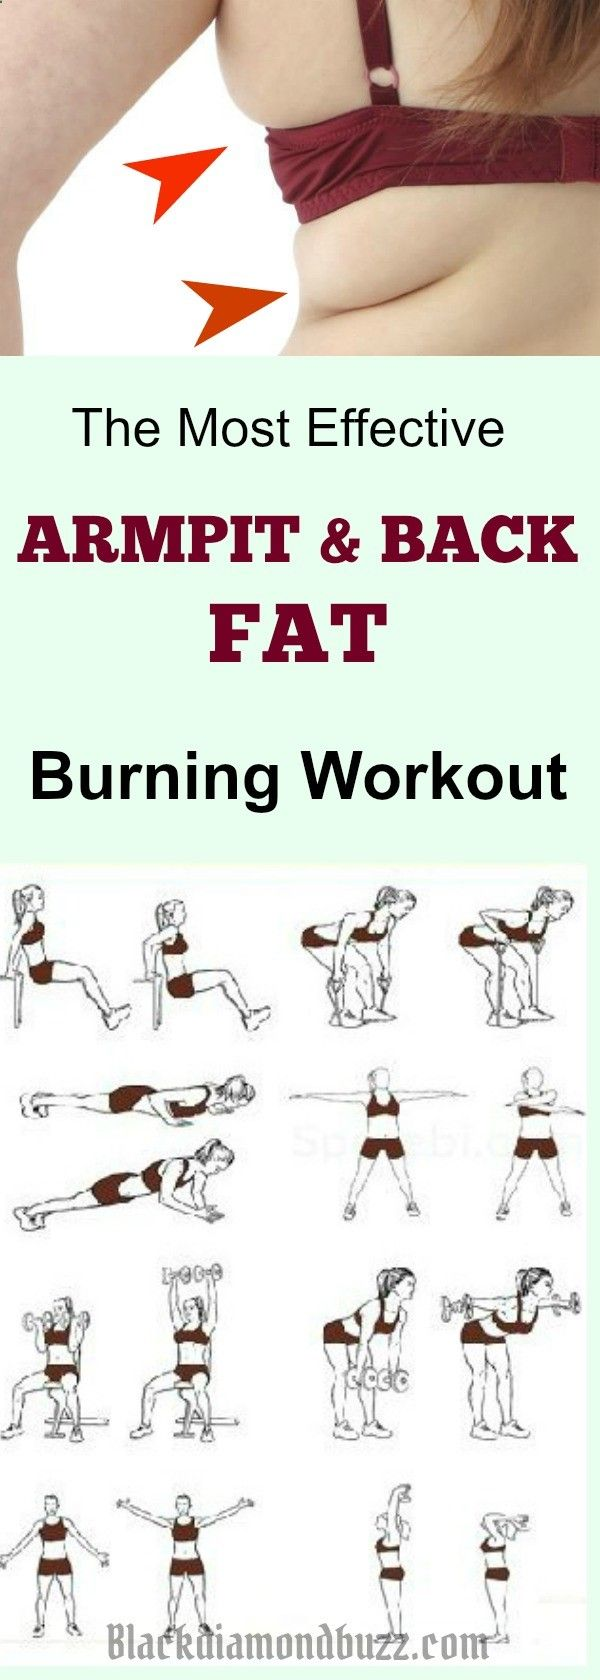 Best routine to lose fat and gain muscle